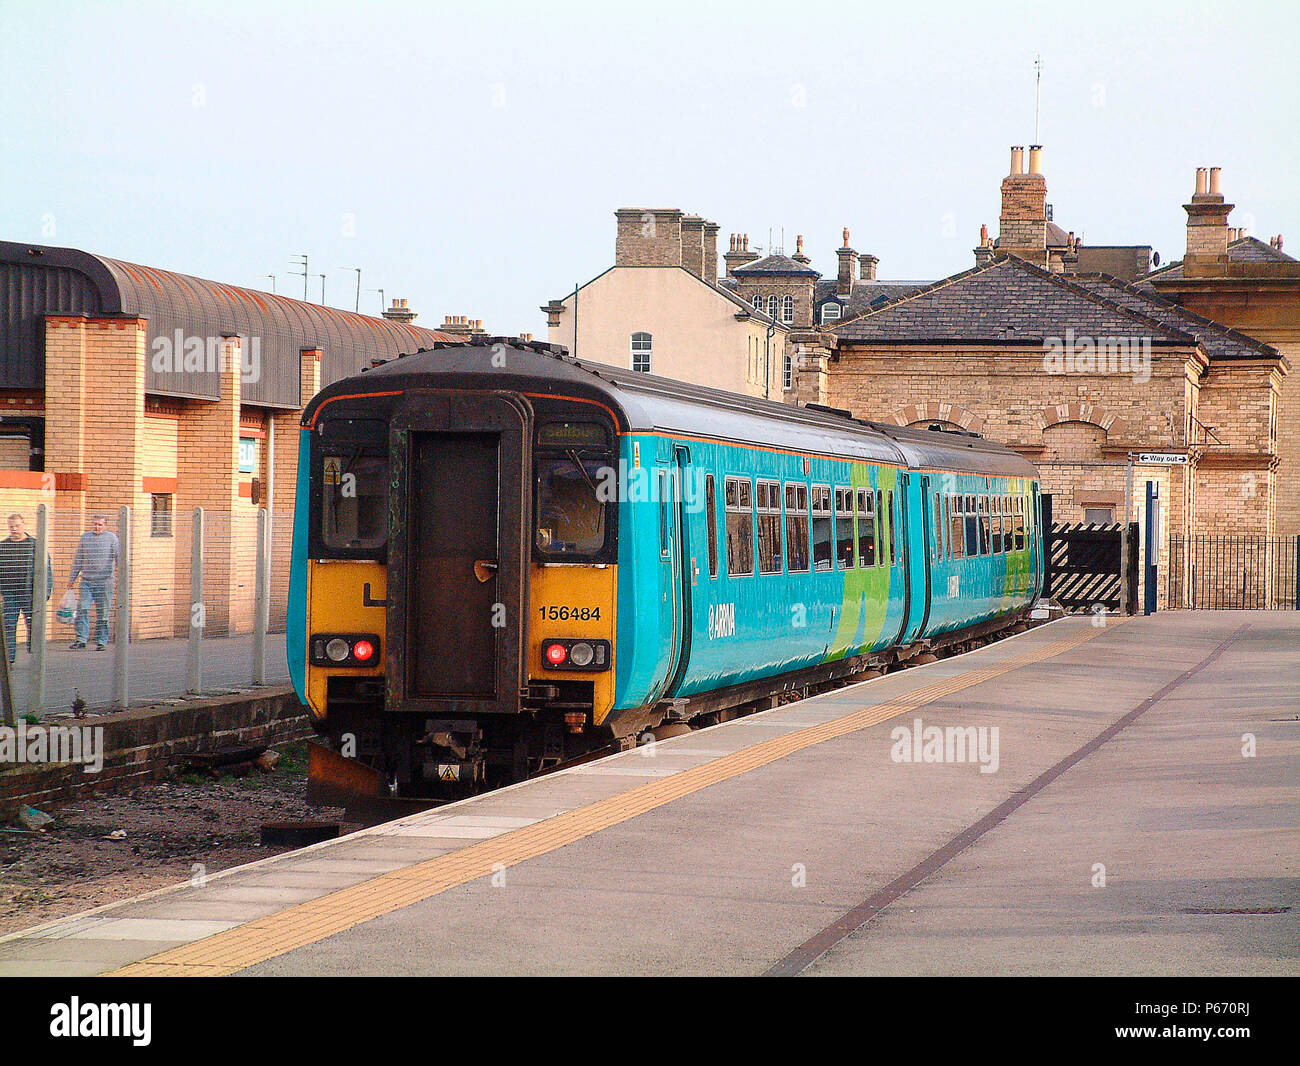 The seaside resort of Saltburn is still served by a frequent number of trains, usually Sprinters, such as this local service to Newcastle awaiting dep - Stock Image